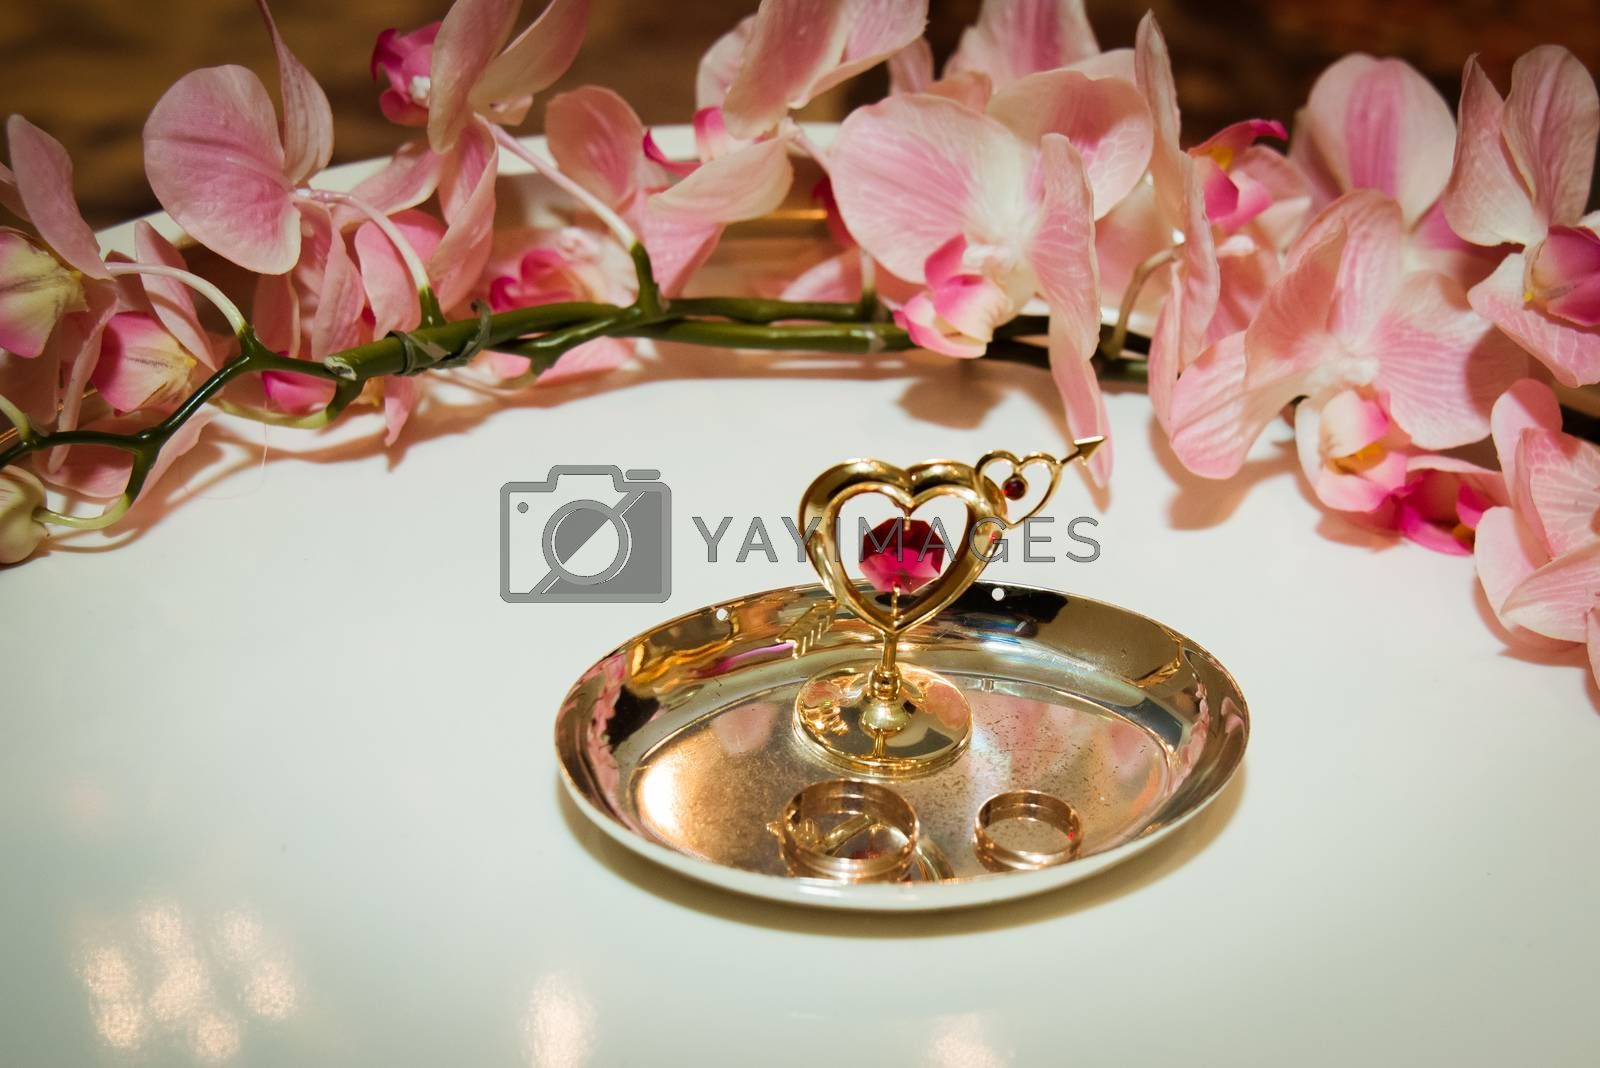 Two beautiful gold wedding rings lie on plates decorated with hearts and pink orchids